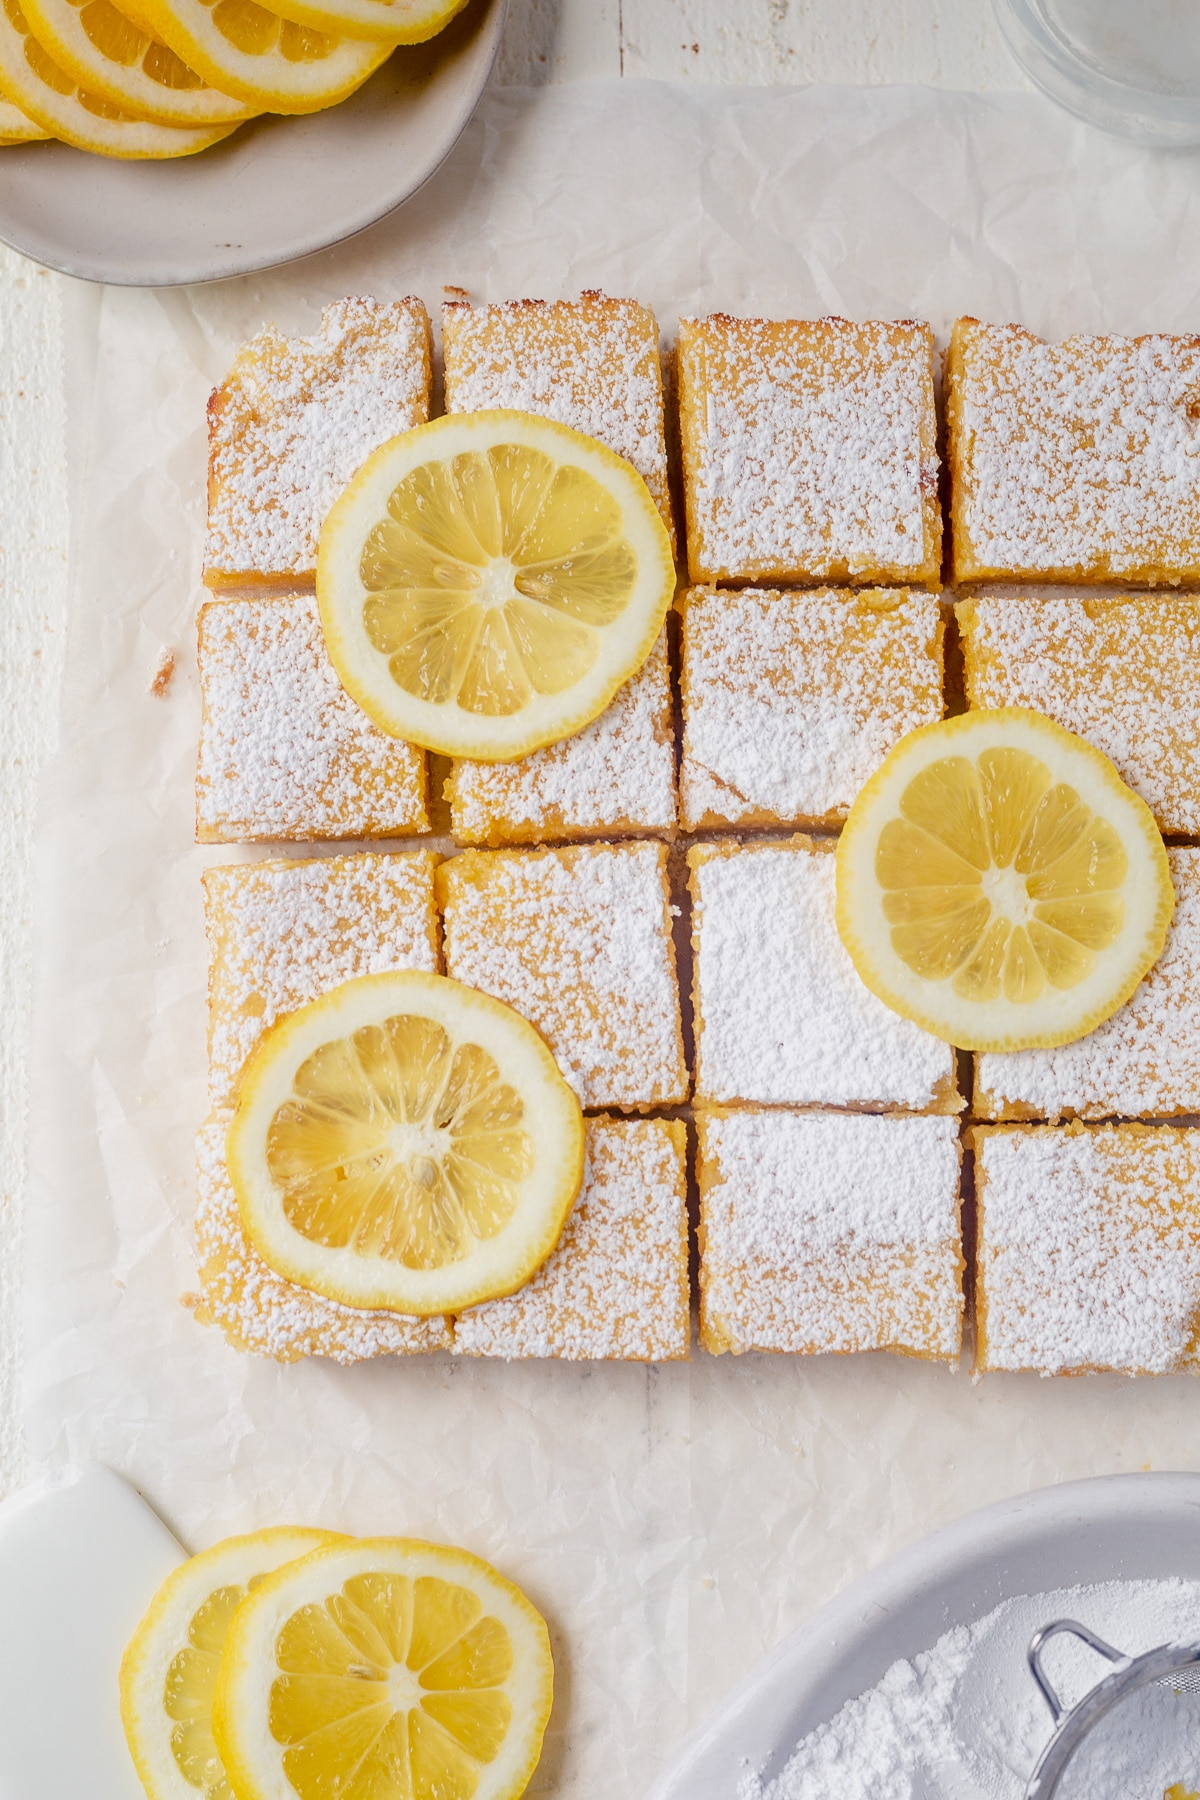 a pan of gluten free lemon bars cut into 12 squares on parchment paper and stopped with confectioners' sugar and lemon slices